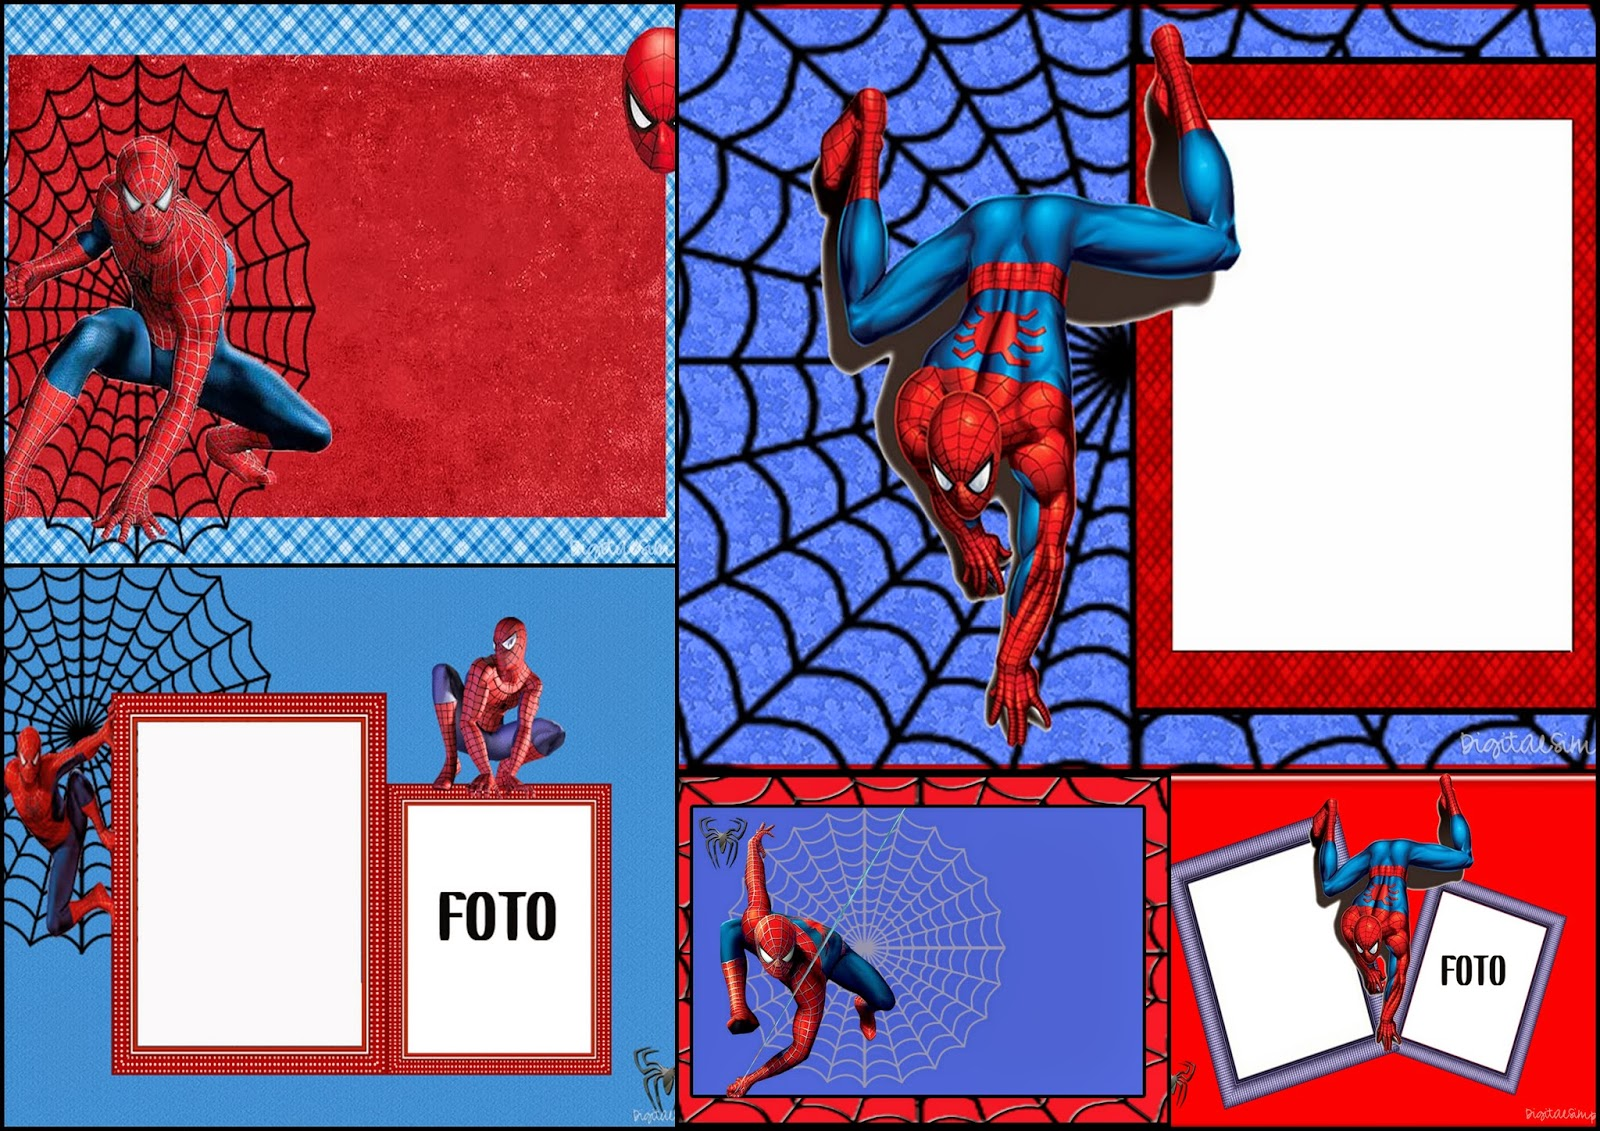 Spiderman theme birthday party is extremely popular with the kids. Spiderman Free Printable Invitations Cards Or Photo Frames Oh My Fiesta For Geeks